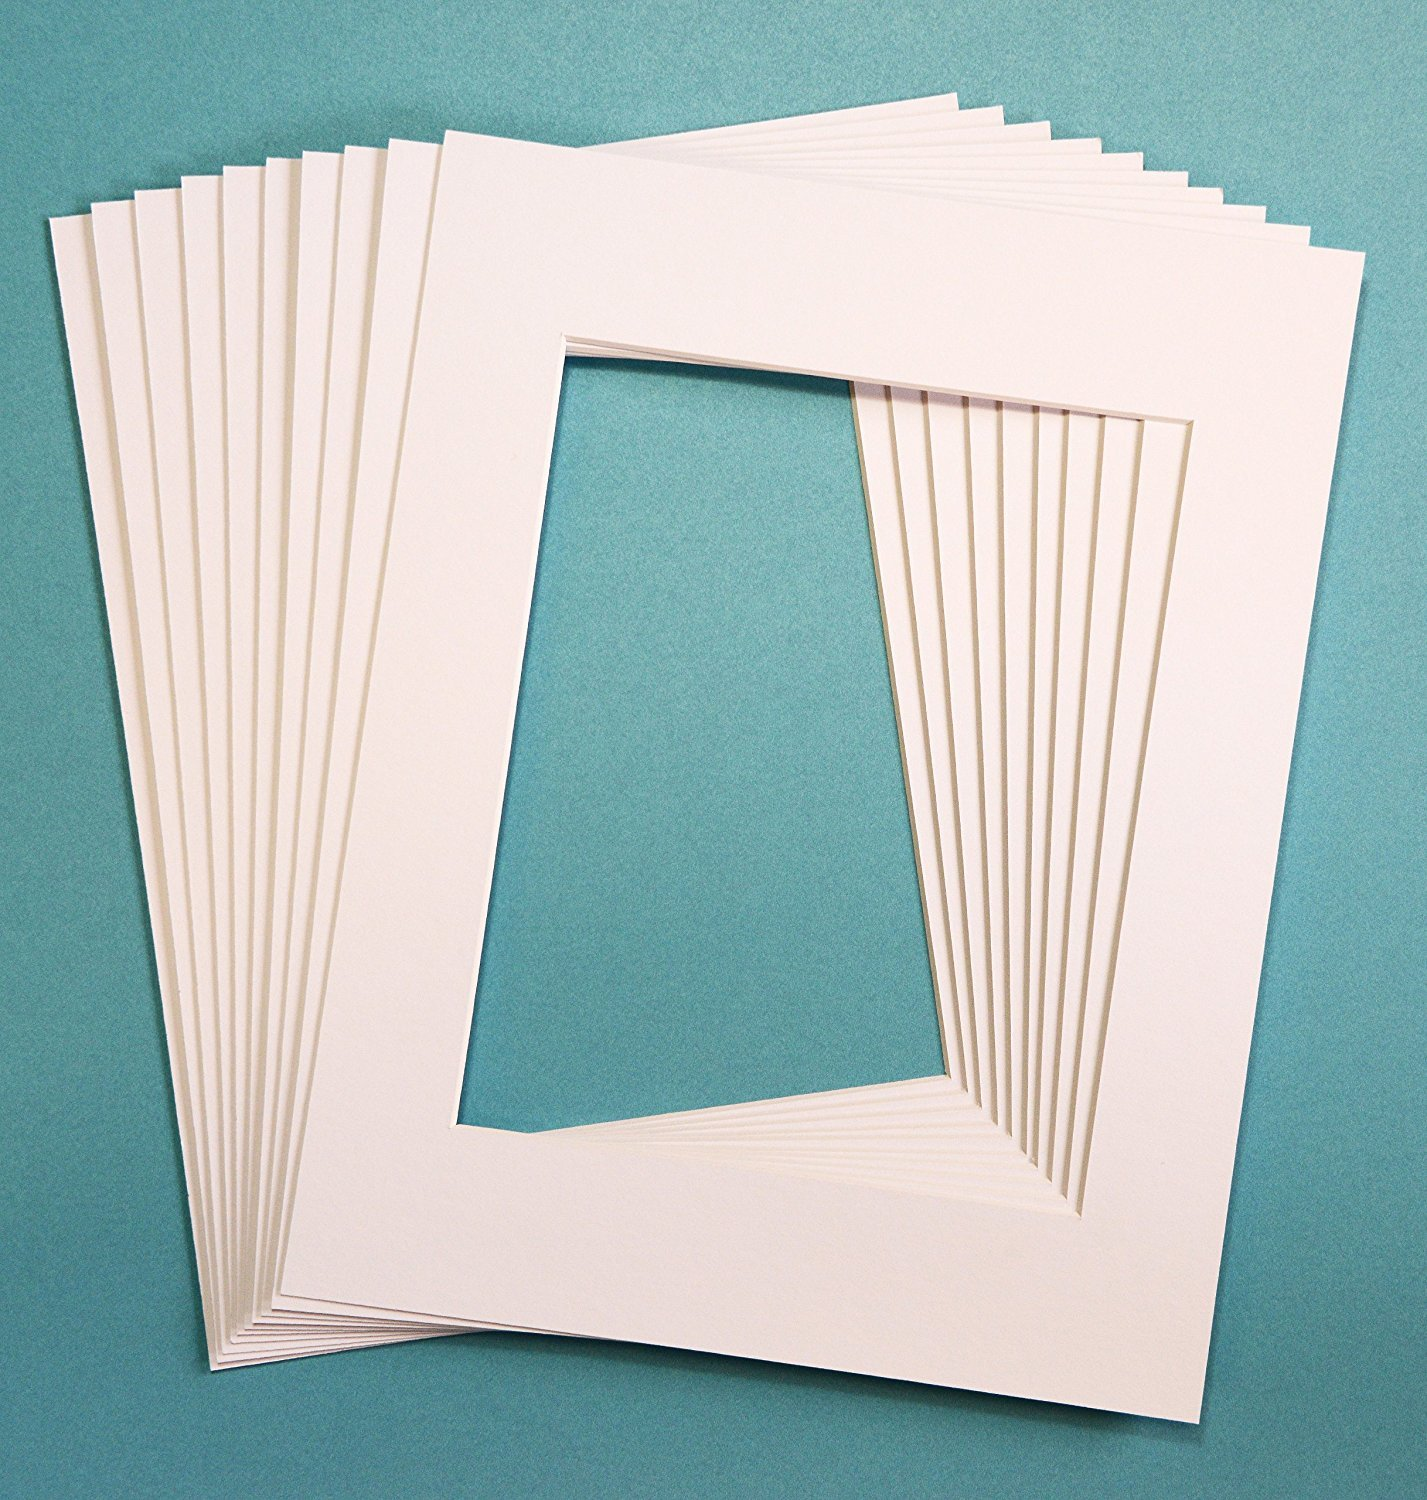 Pack of 25 WHITE 5x7 Picture Mats Matting with White Core Bevel Cut for 4x6 Pictures Unknown